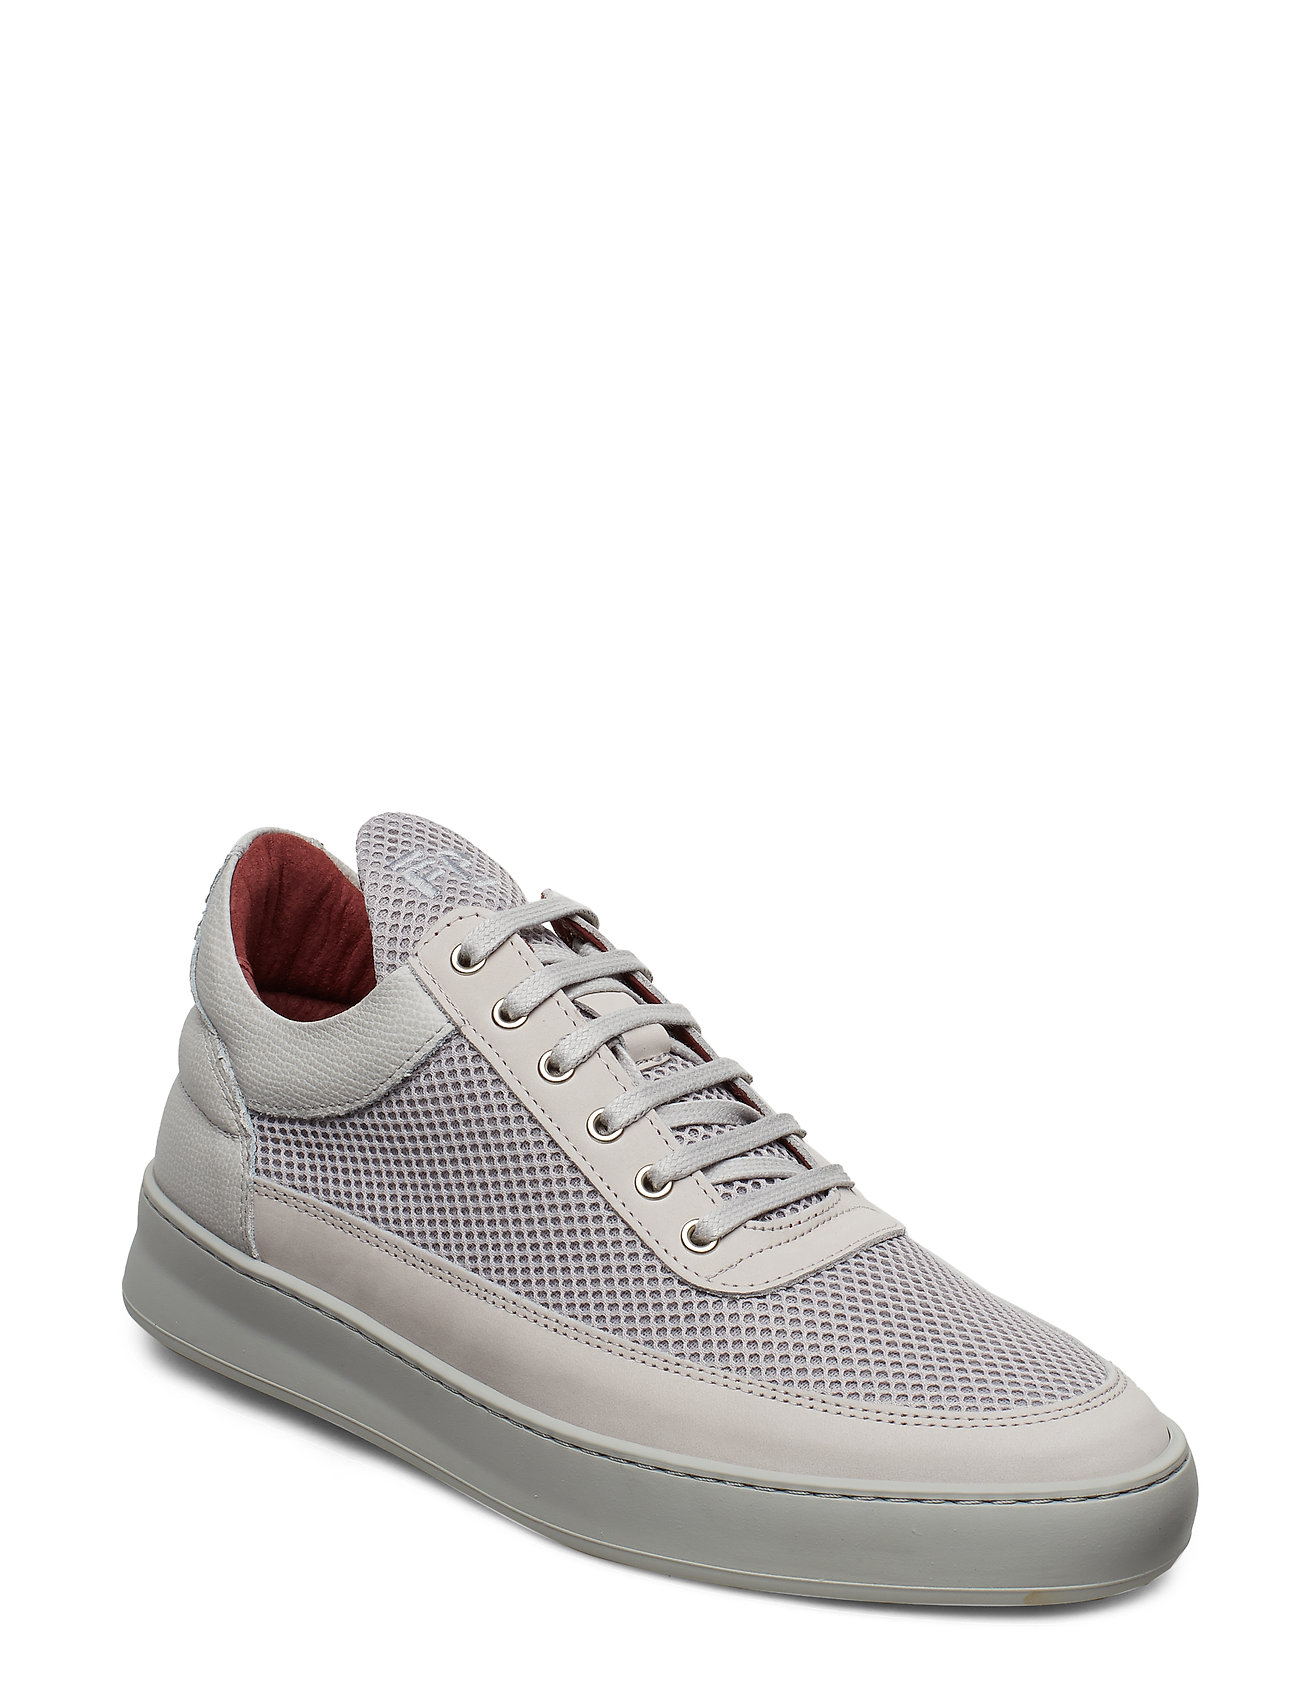 Image of Low Top Plain Infinity Low-top Sneakers Grå Filling Pieces (3215649313)